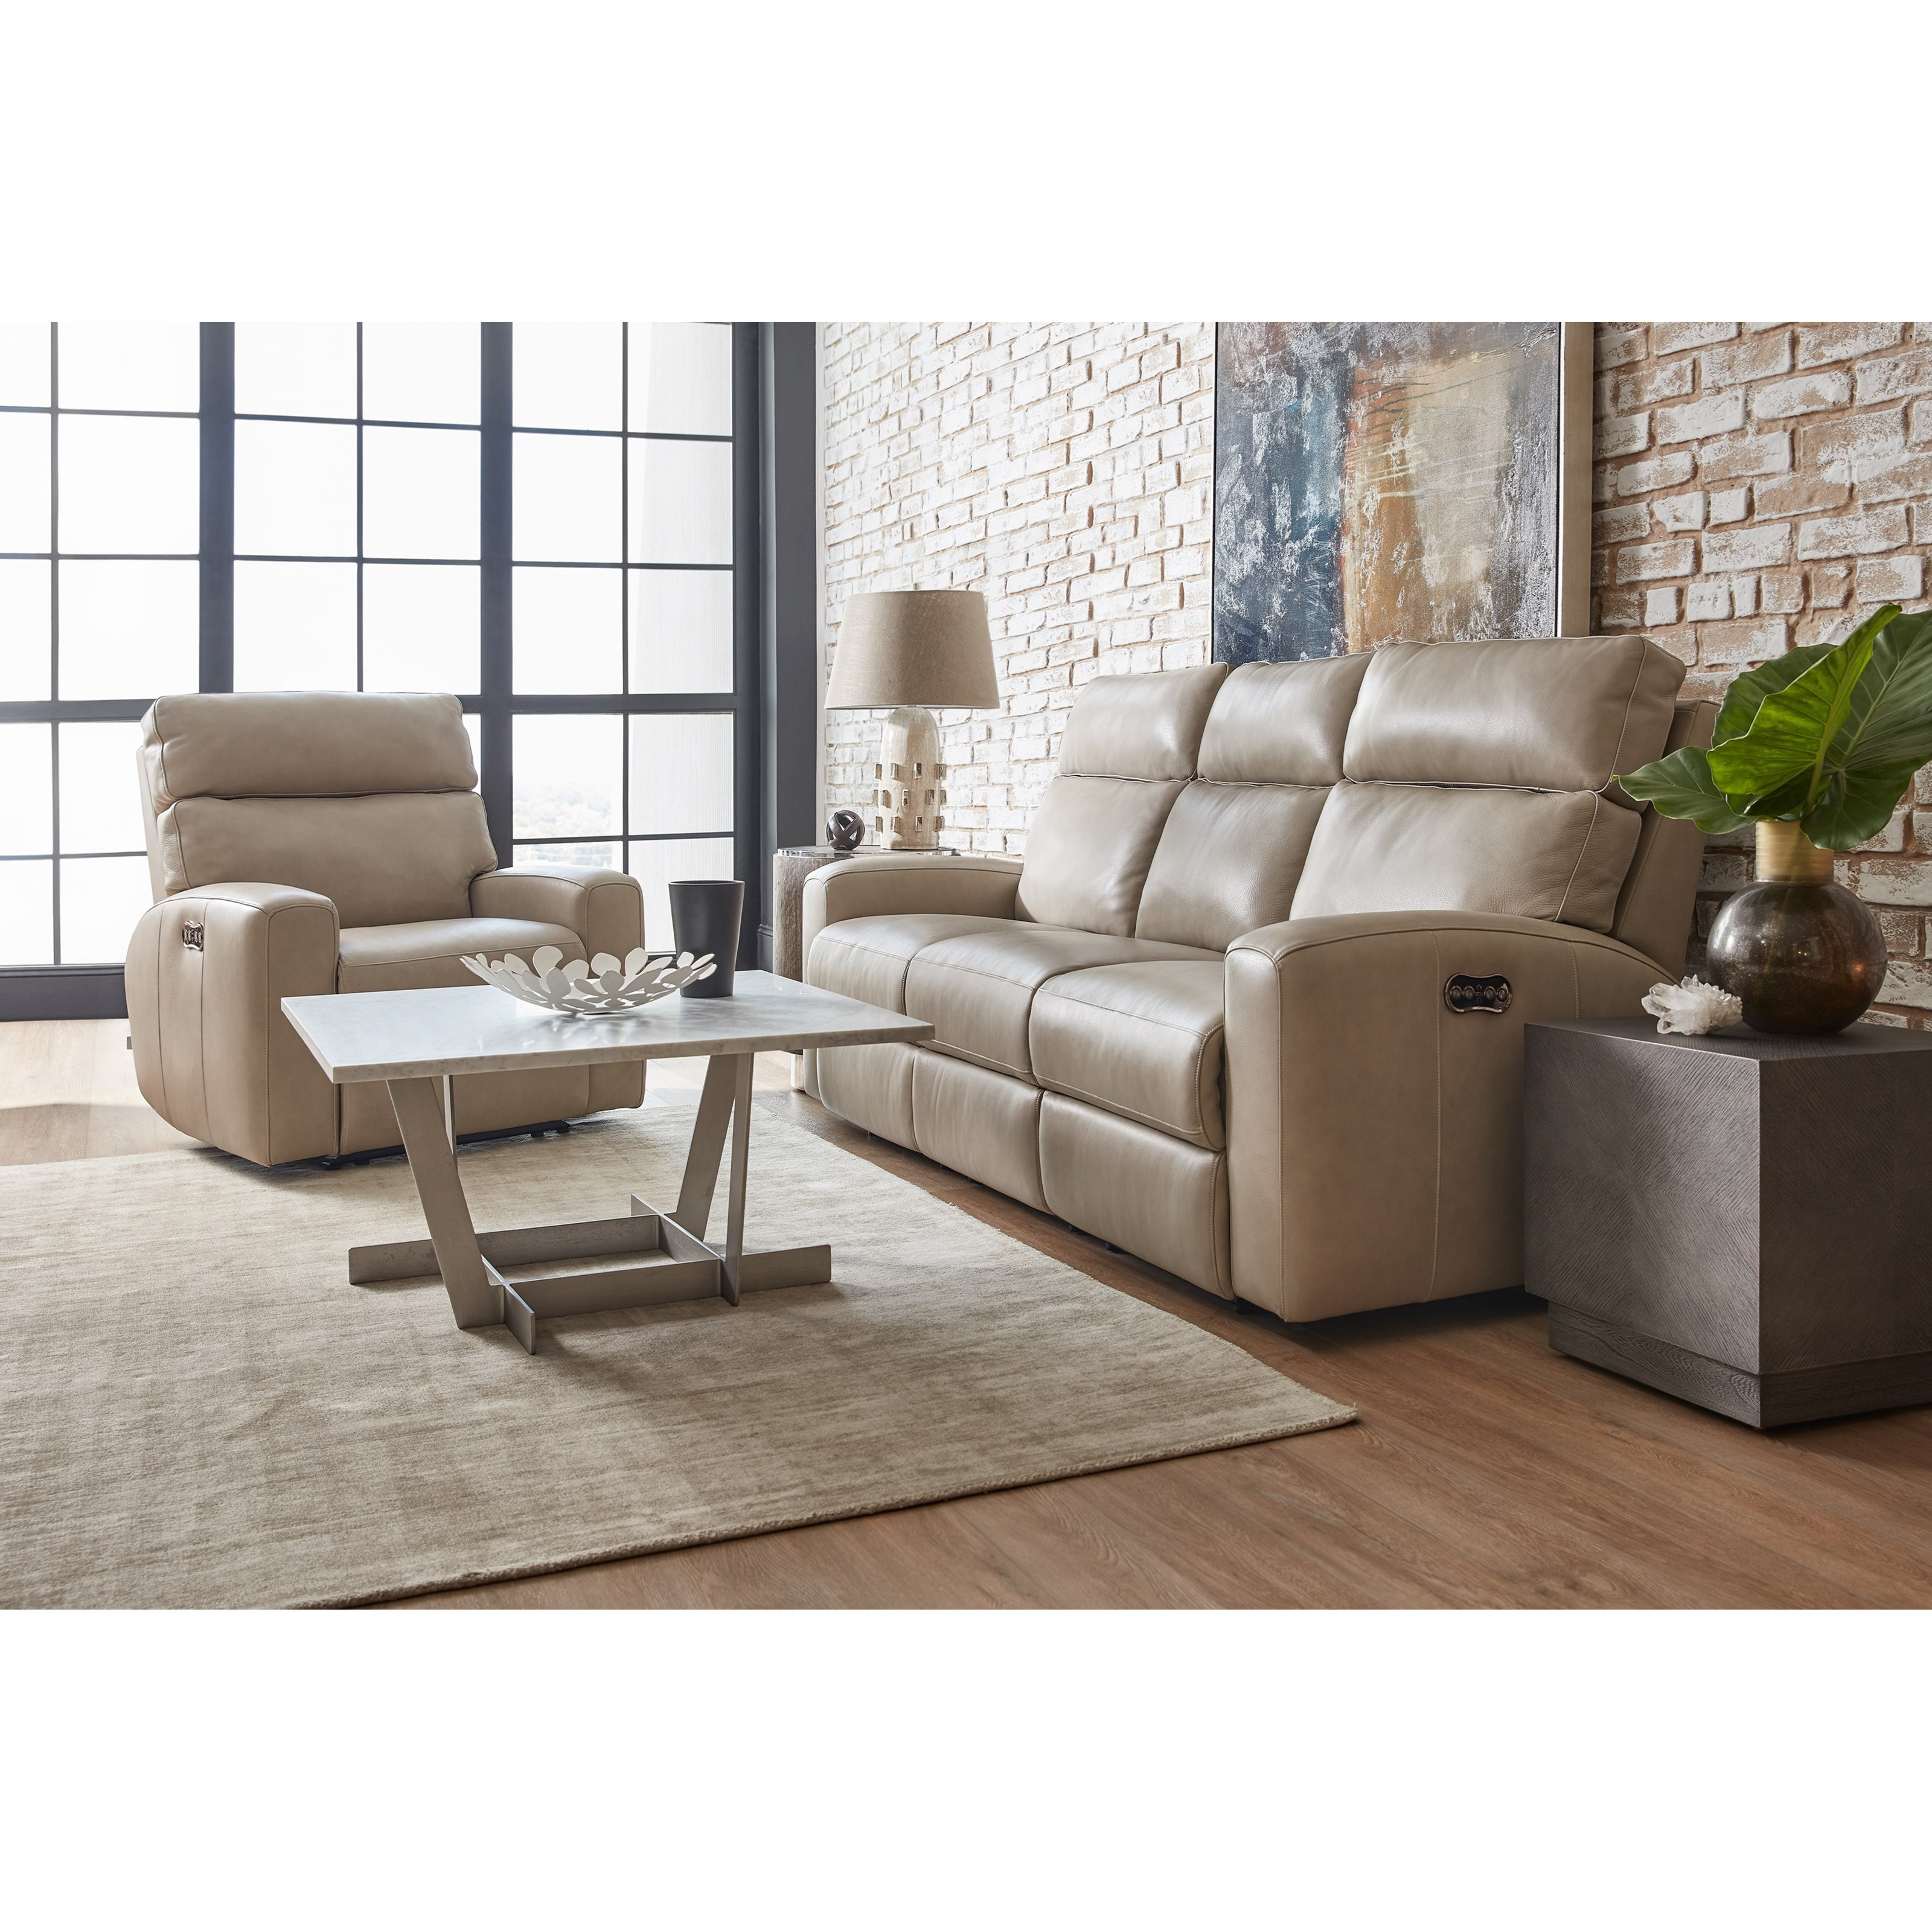 Mowry Reclining Living Room Group by Hooker Furniture at Baer's Furniture